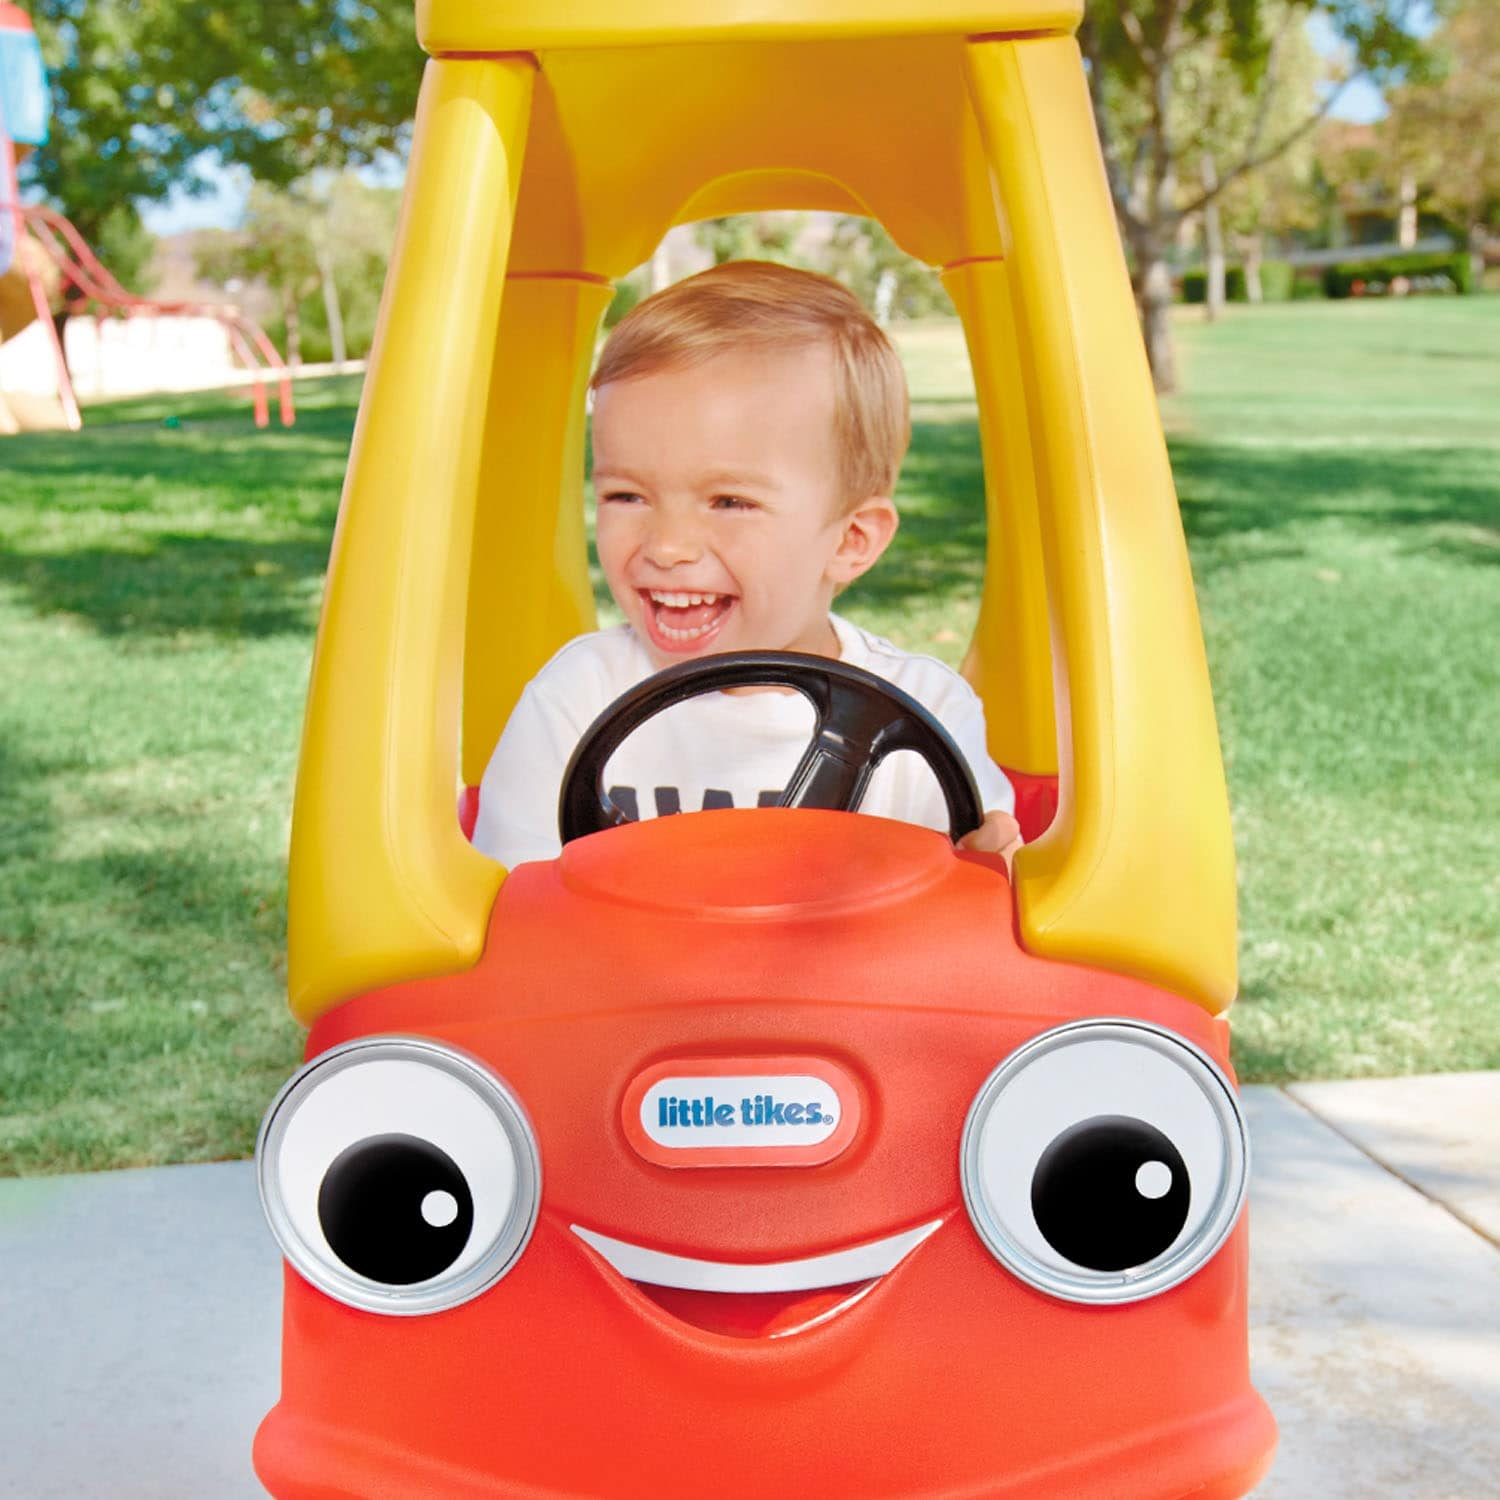 10 Riding Toys For 2 Year Olds